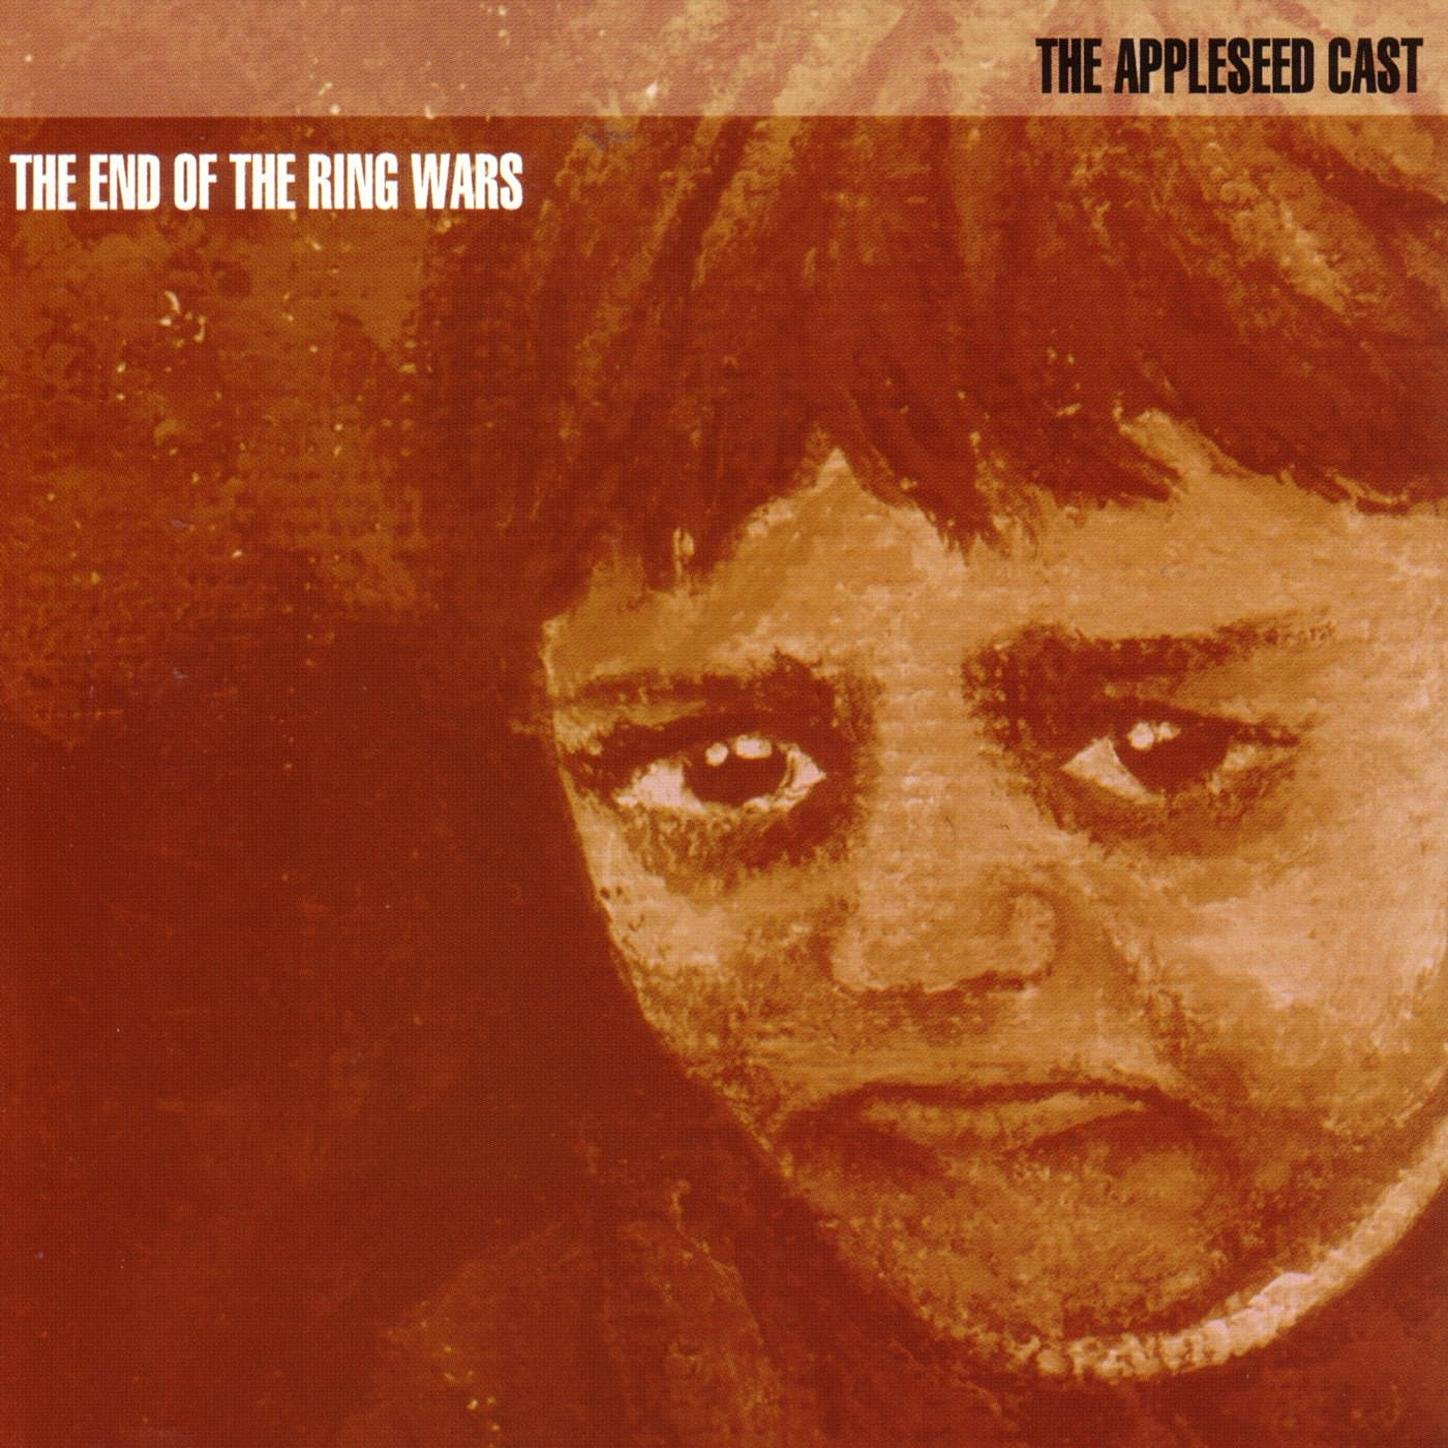 The Appleseed Cast - The End Of The Ring Wars (1998) [FLAC] Download